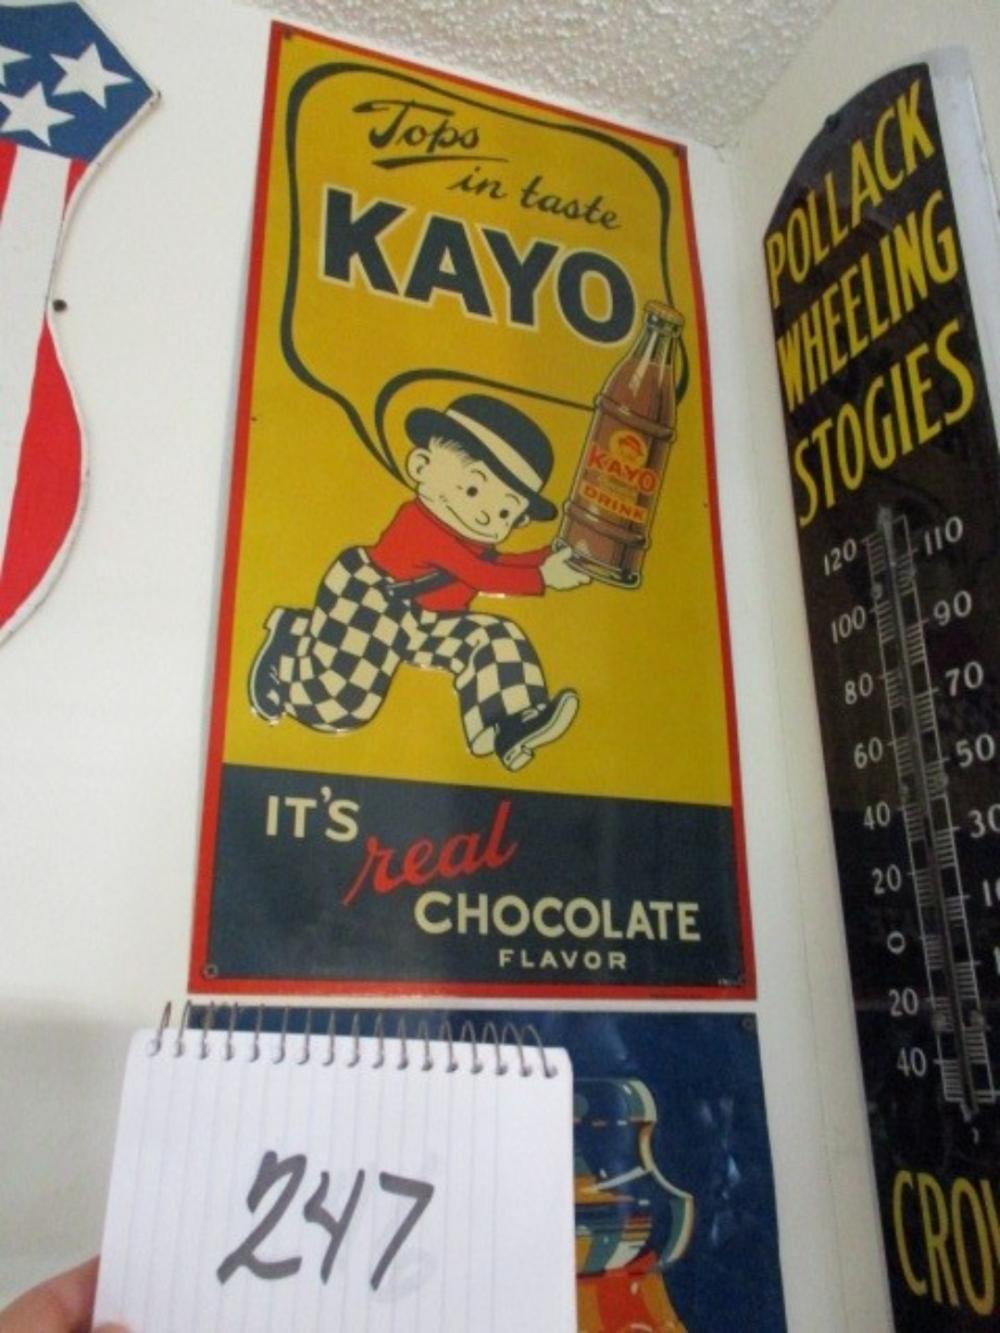 "Tops in Taste Kayo It's Real Chocolate Flavor Tin Sign 28""x14"" New Old Stock"